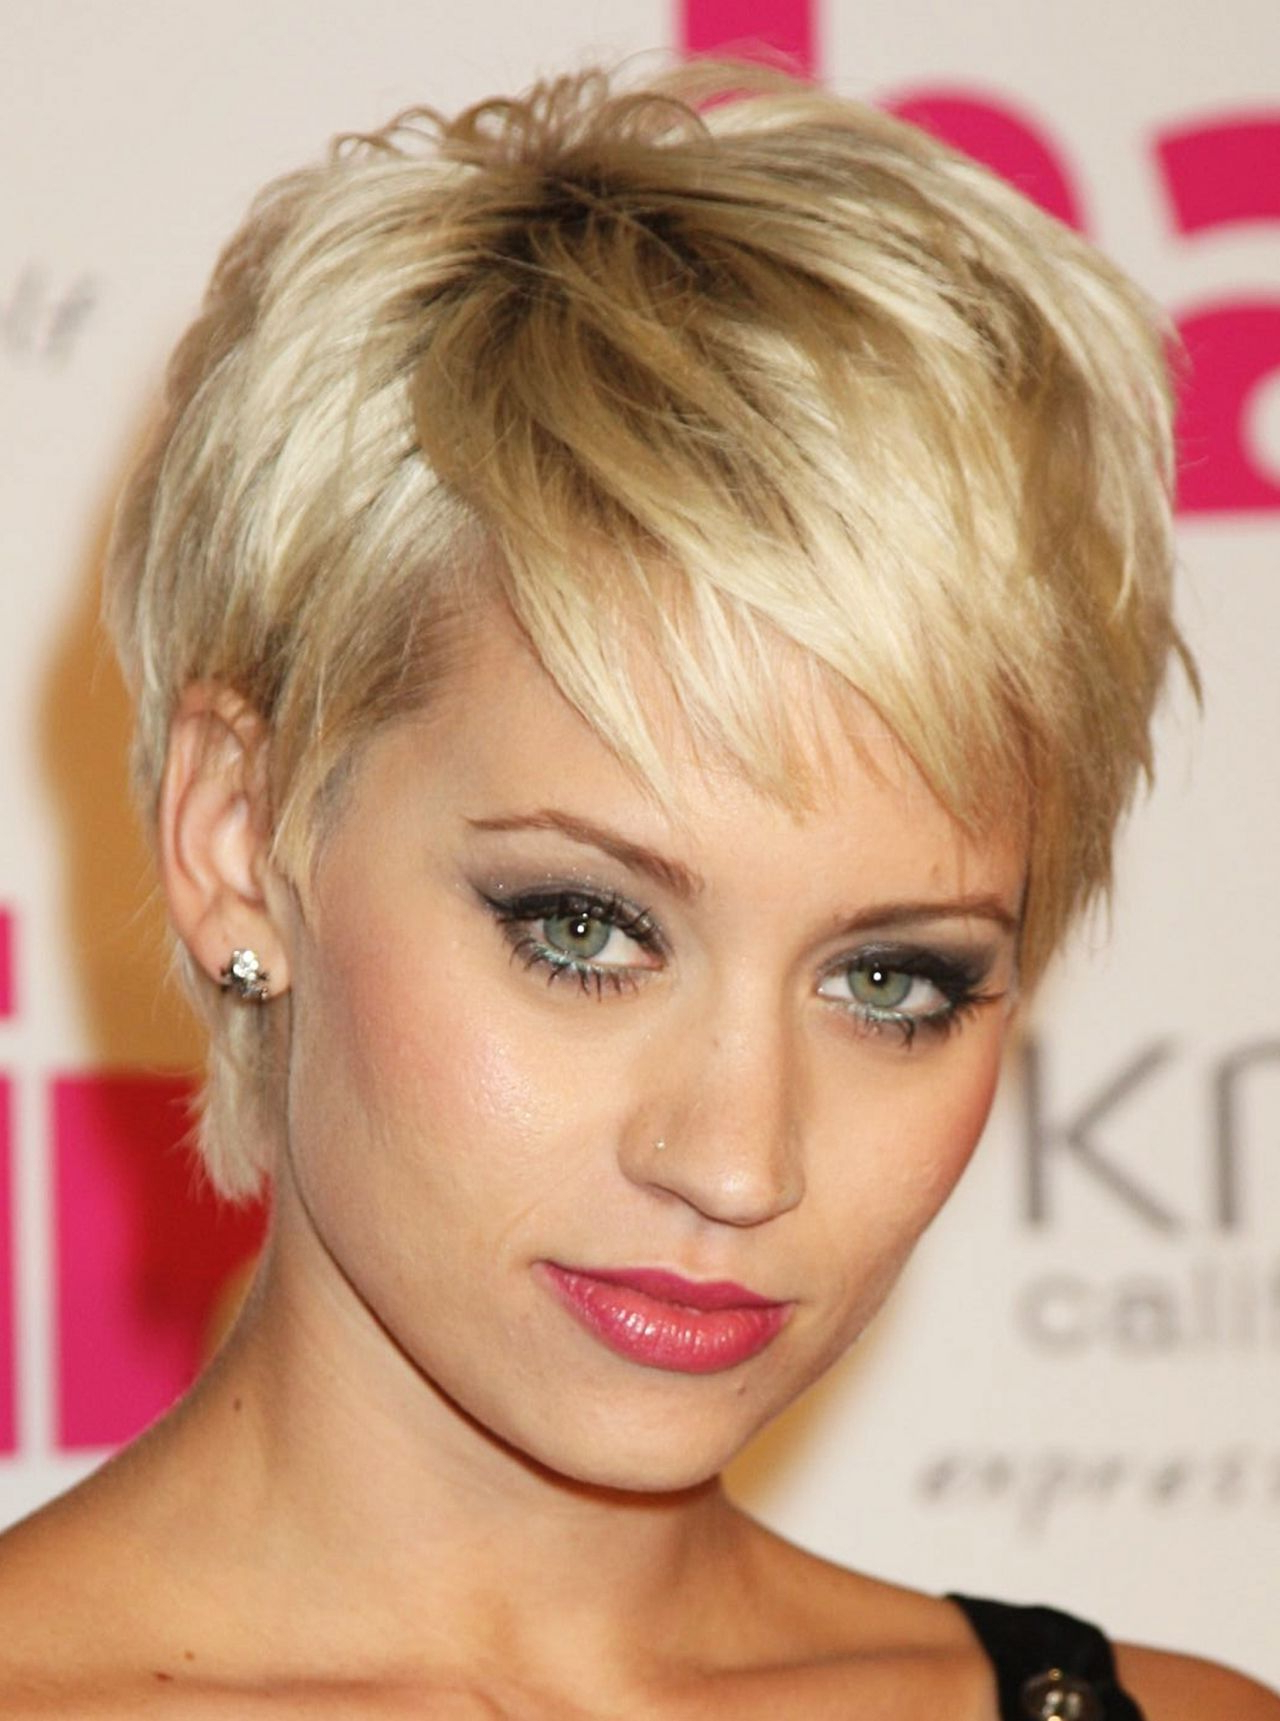 Cute Short Hairstyles   Cute Short Hairstyles   Pinterest   Short In Cute Short Hairstyles For Thin Hair (View 11 of 25)